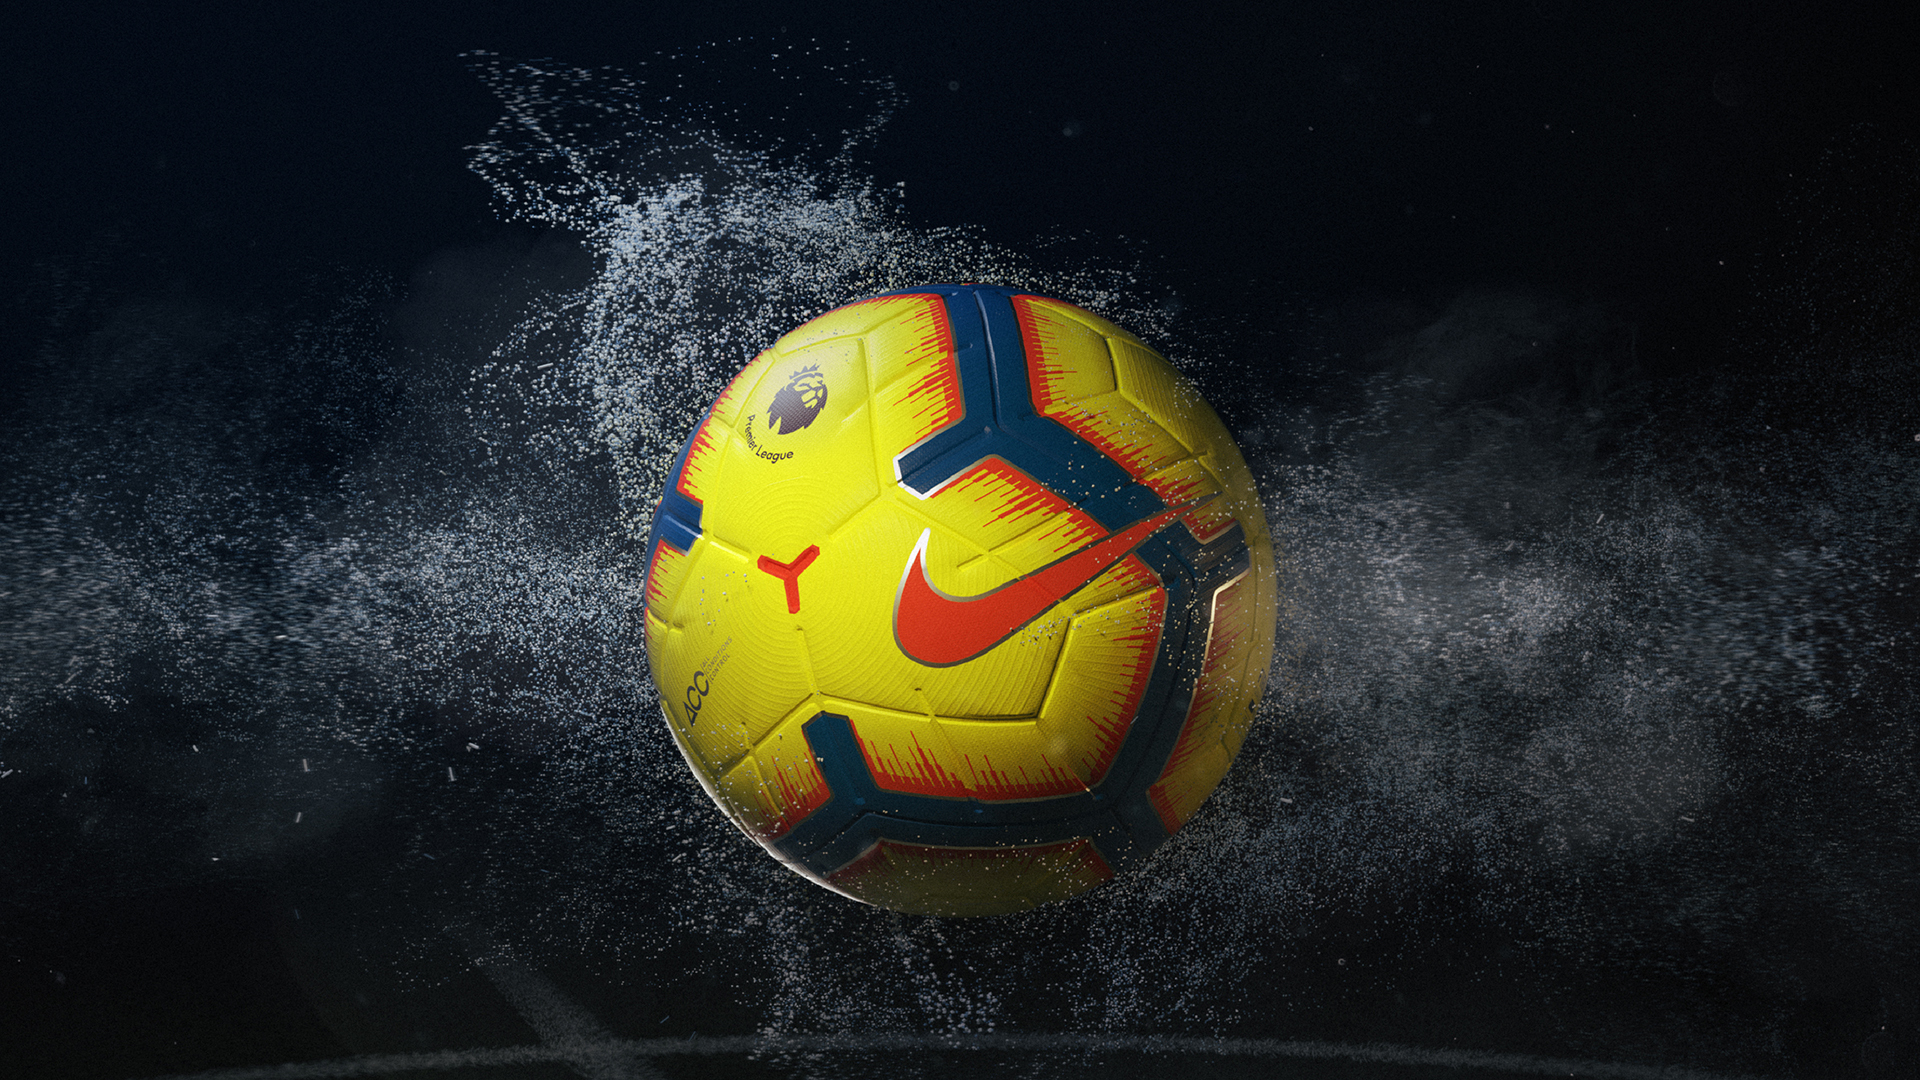 Premier League Merlin Nike ball